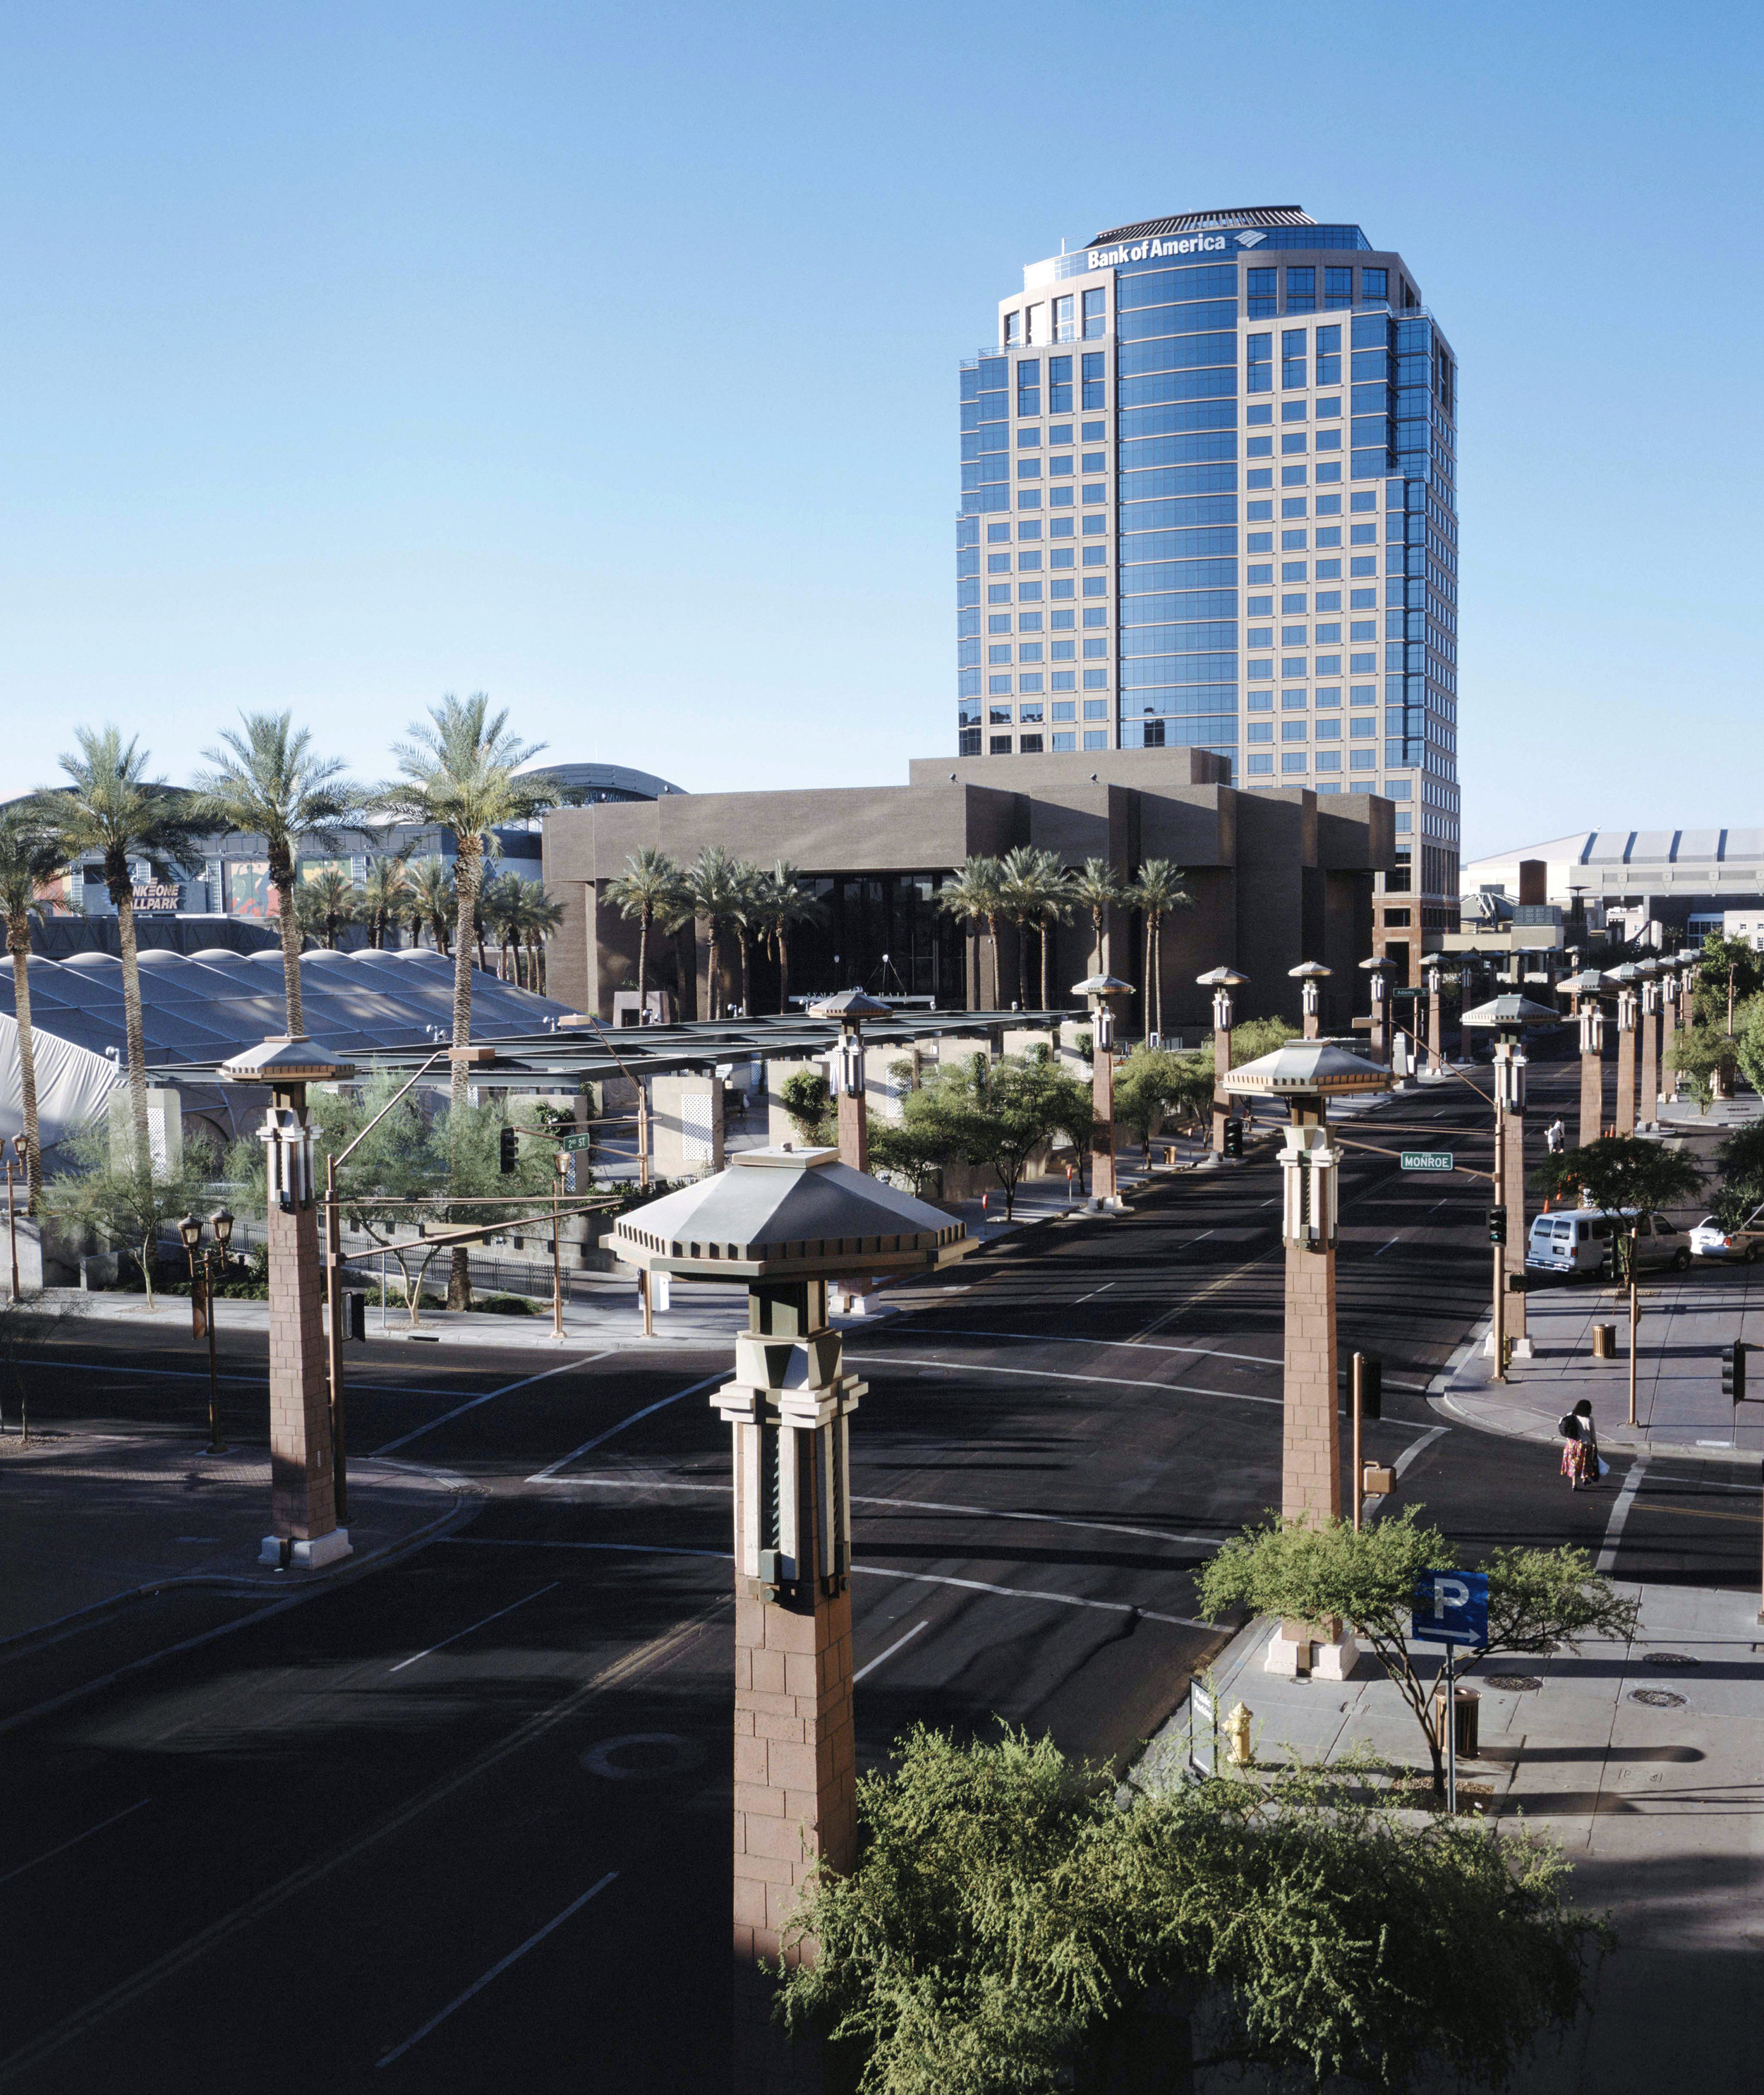 25TH ANNIVERSARY FACT: - February 1995 marked the completion of Achen-Gardner's Downtown Phoenix Streetscape Project. This Design-Bid-Build project for the City of Phoenix was constructed in preparation for the 1995 NBA All-Star Game on February 12th at America West Arena (now US Airways Center).